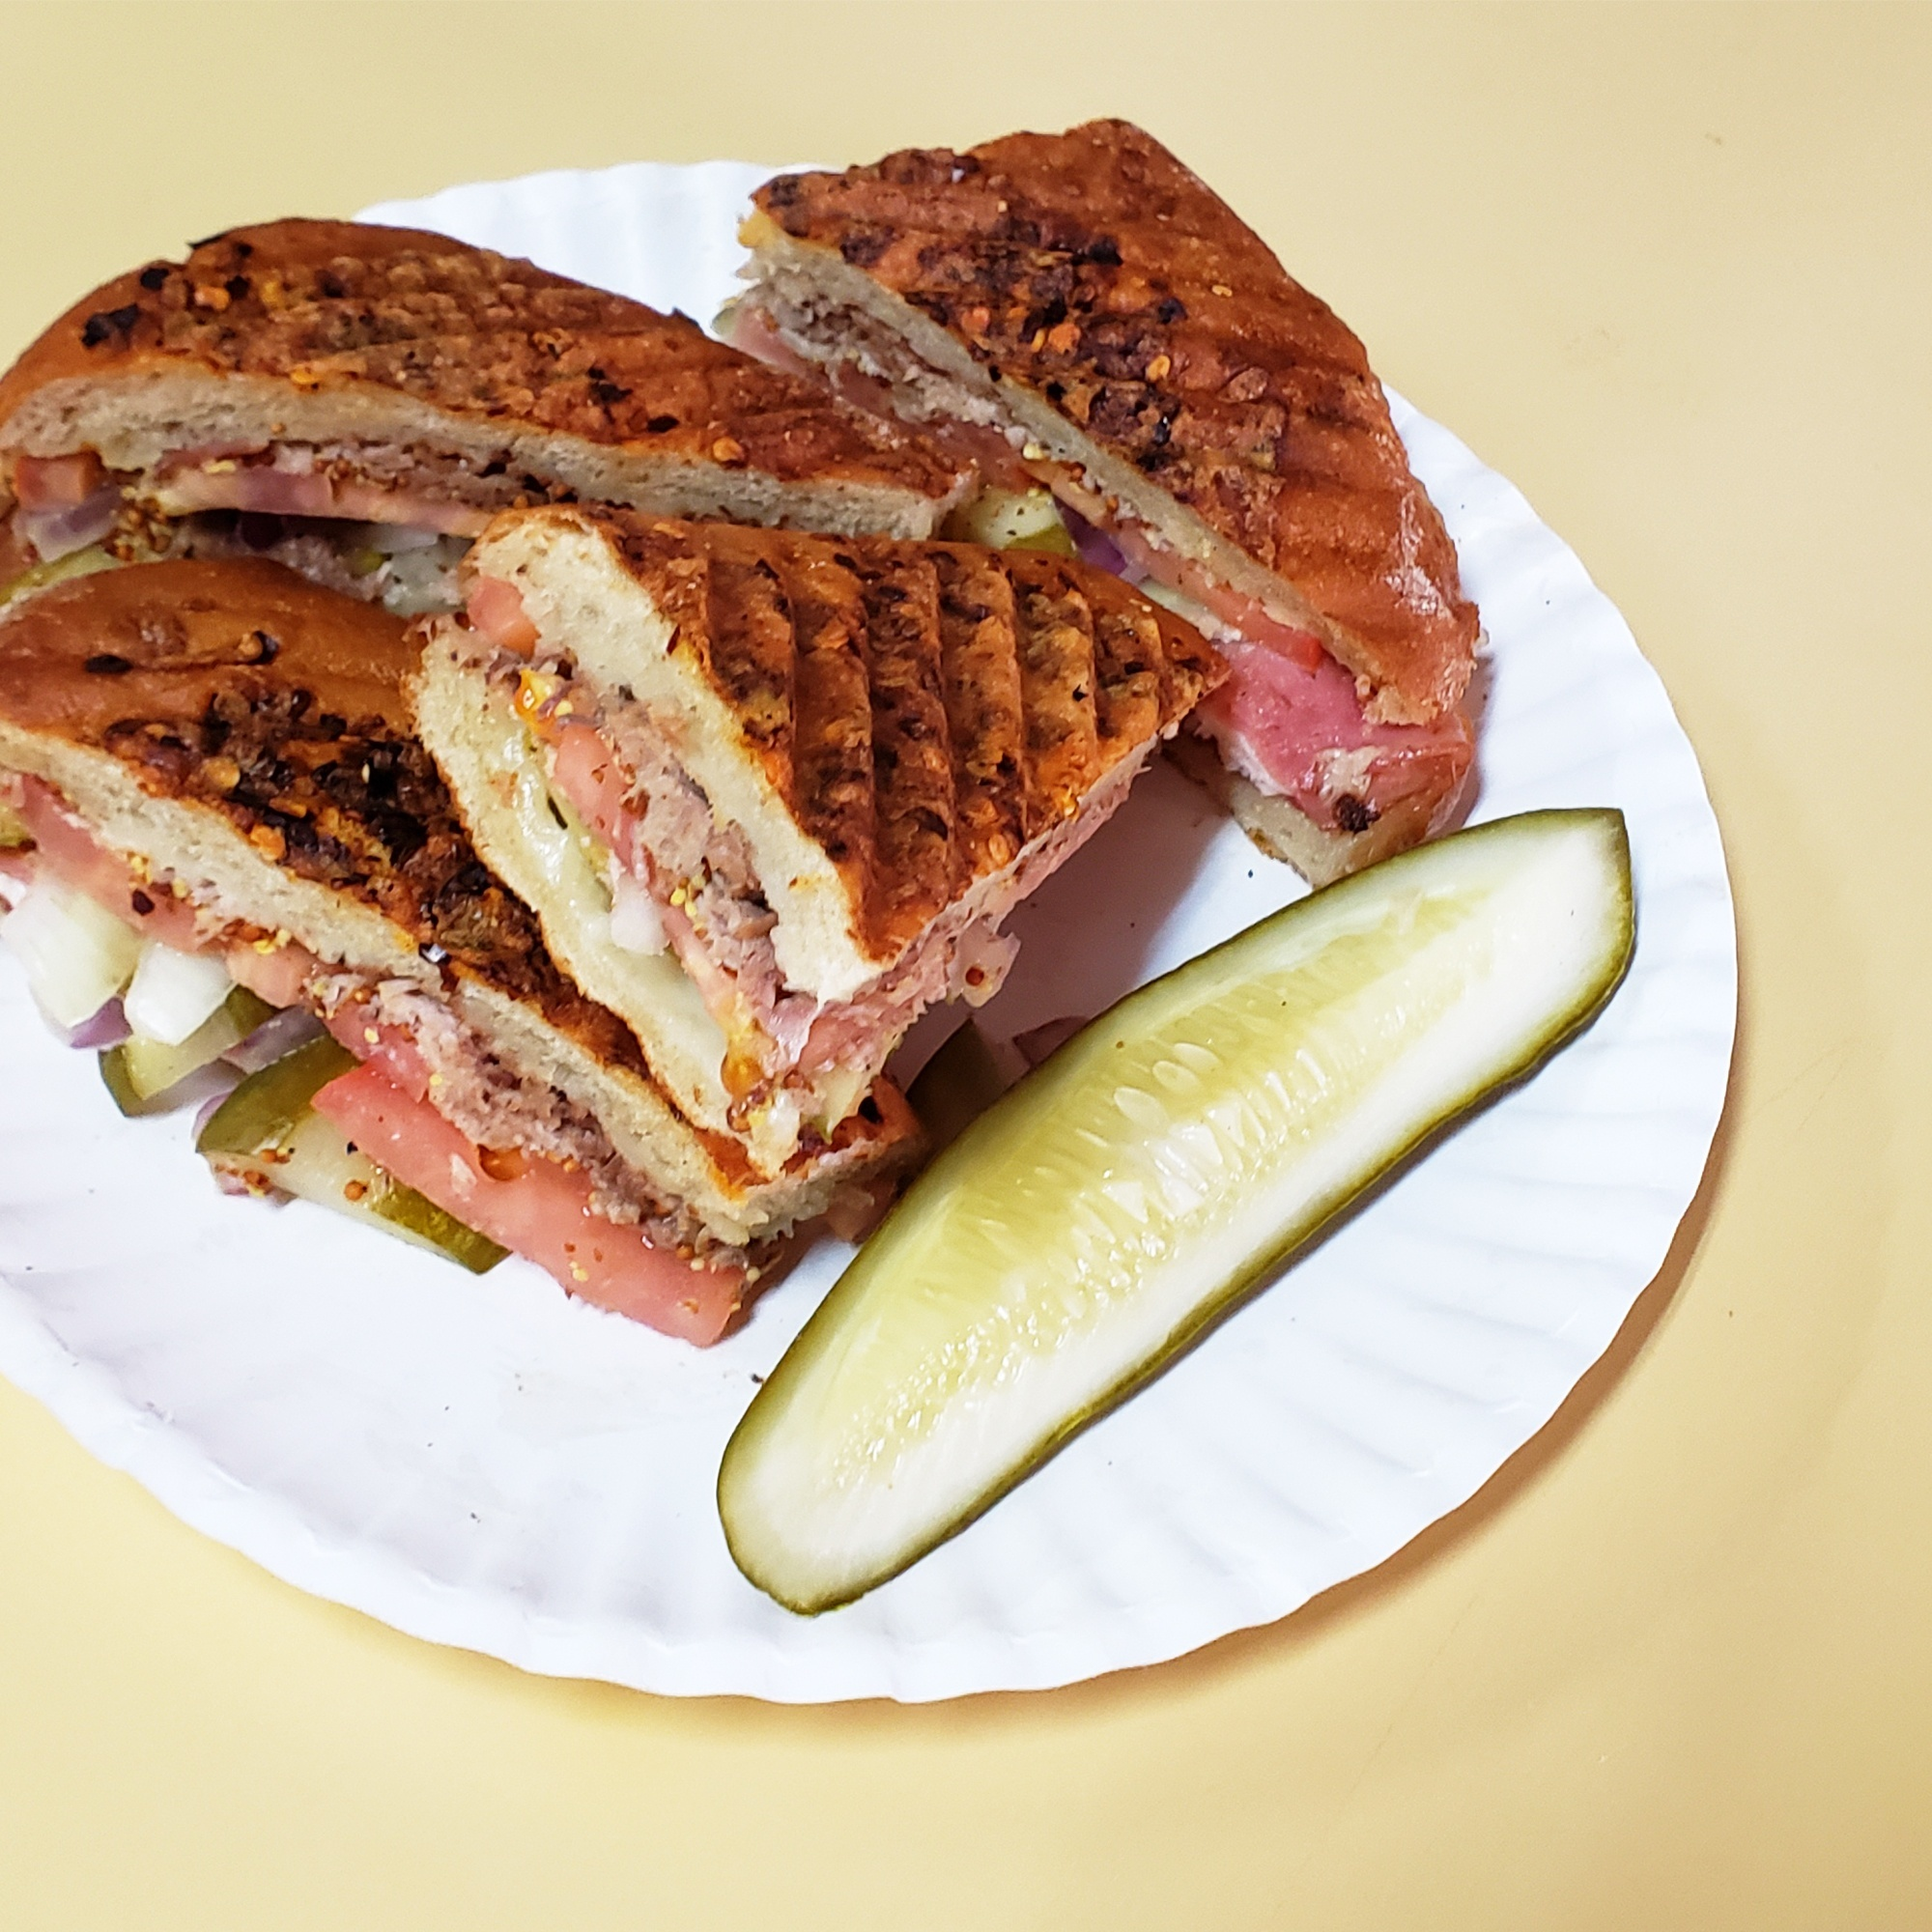 a grilled sandwich on a paper plate with a pickle spear